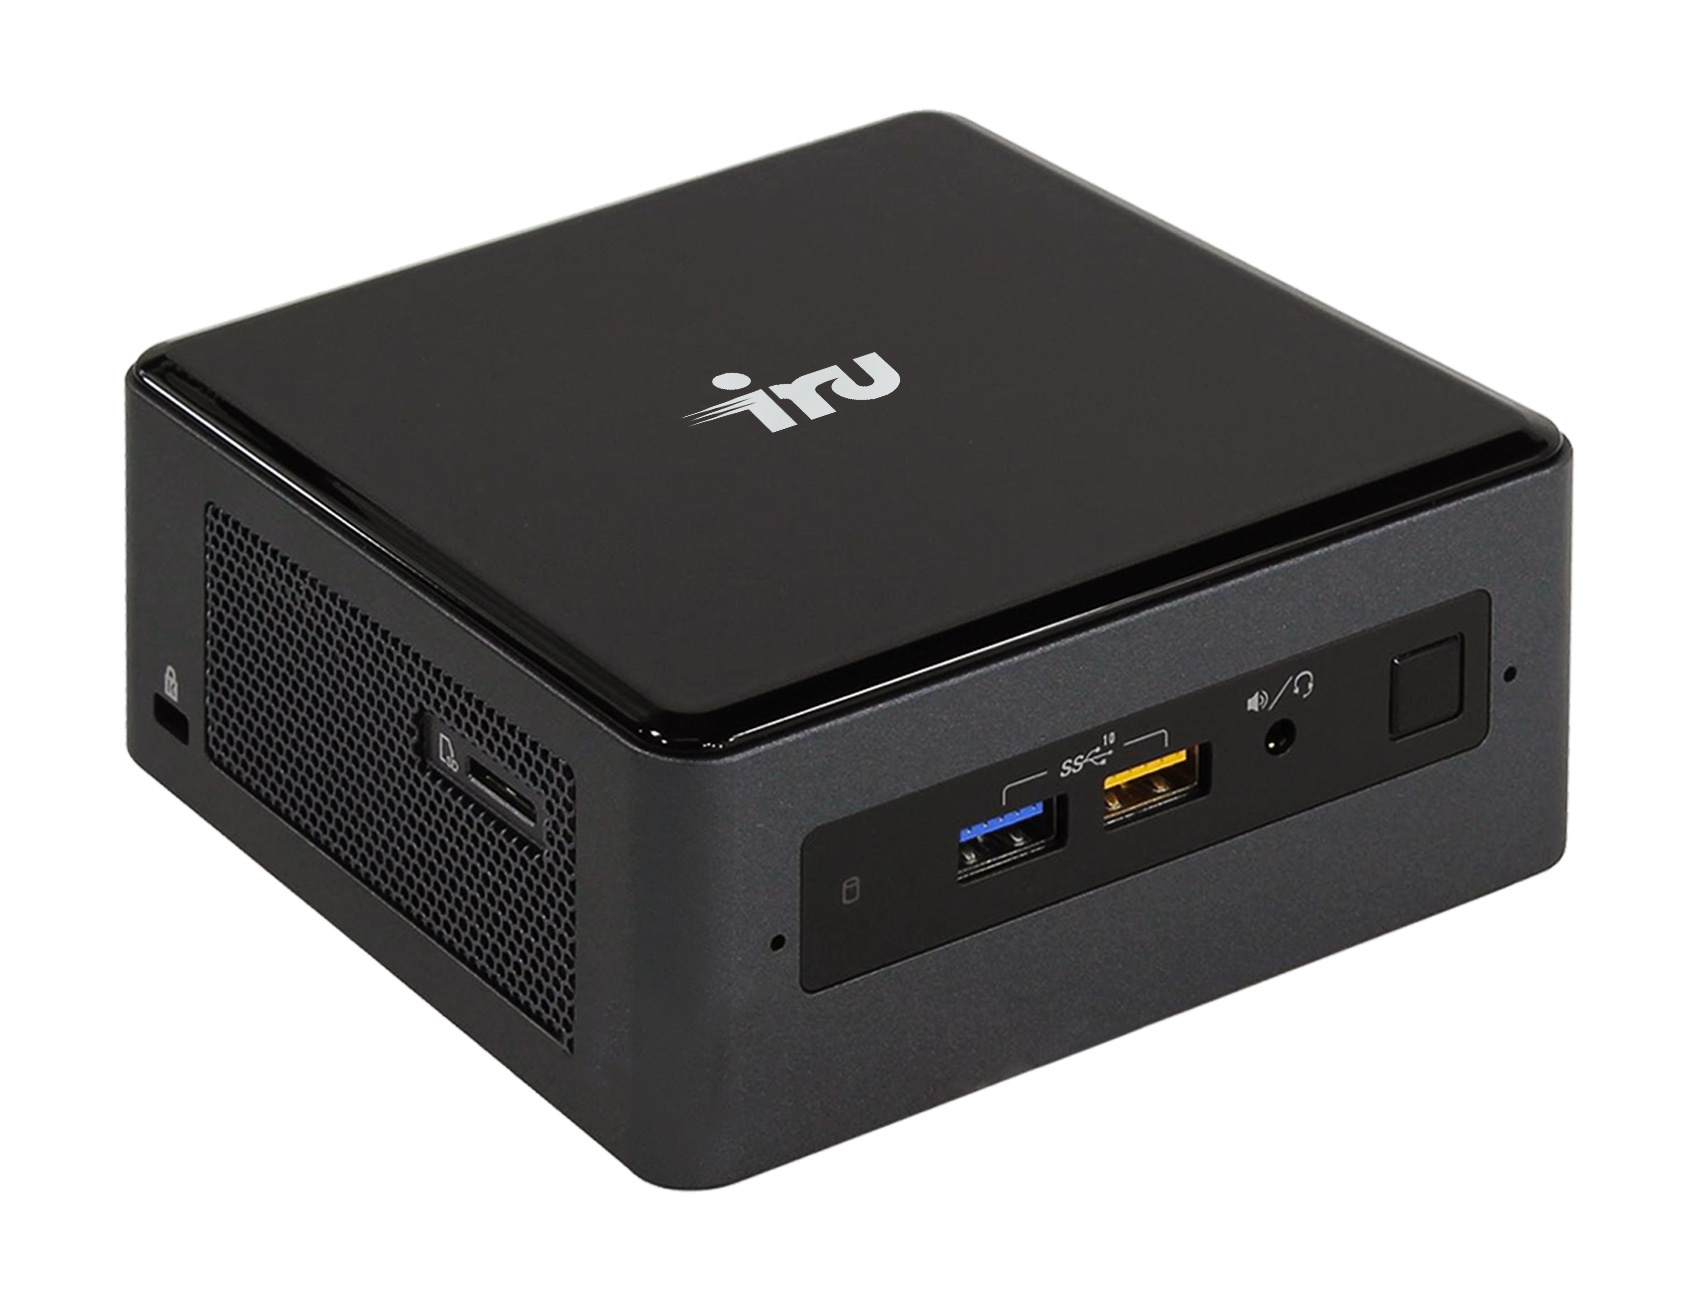 Неттоп IRU NUC 115 i5 8259U (2.3)/8Gb/SSD240Gb/Iris Graphics 655/CR/Windows 10 Home Single Language 64/GbitEth/WiFi/BT/90W/черный